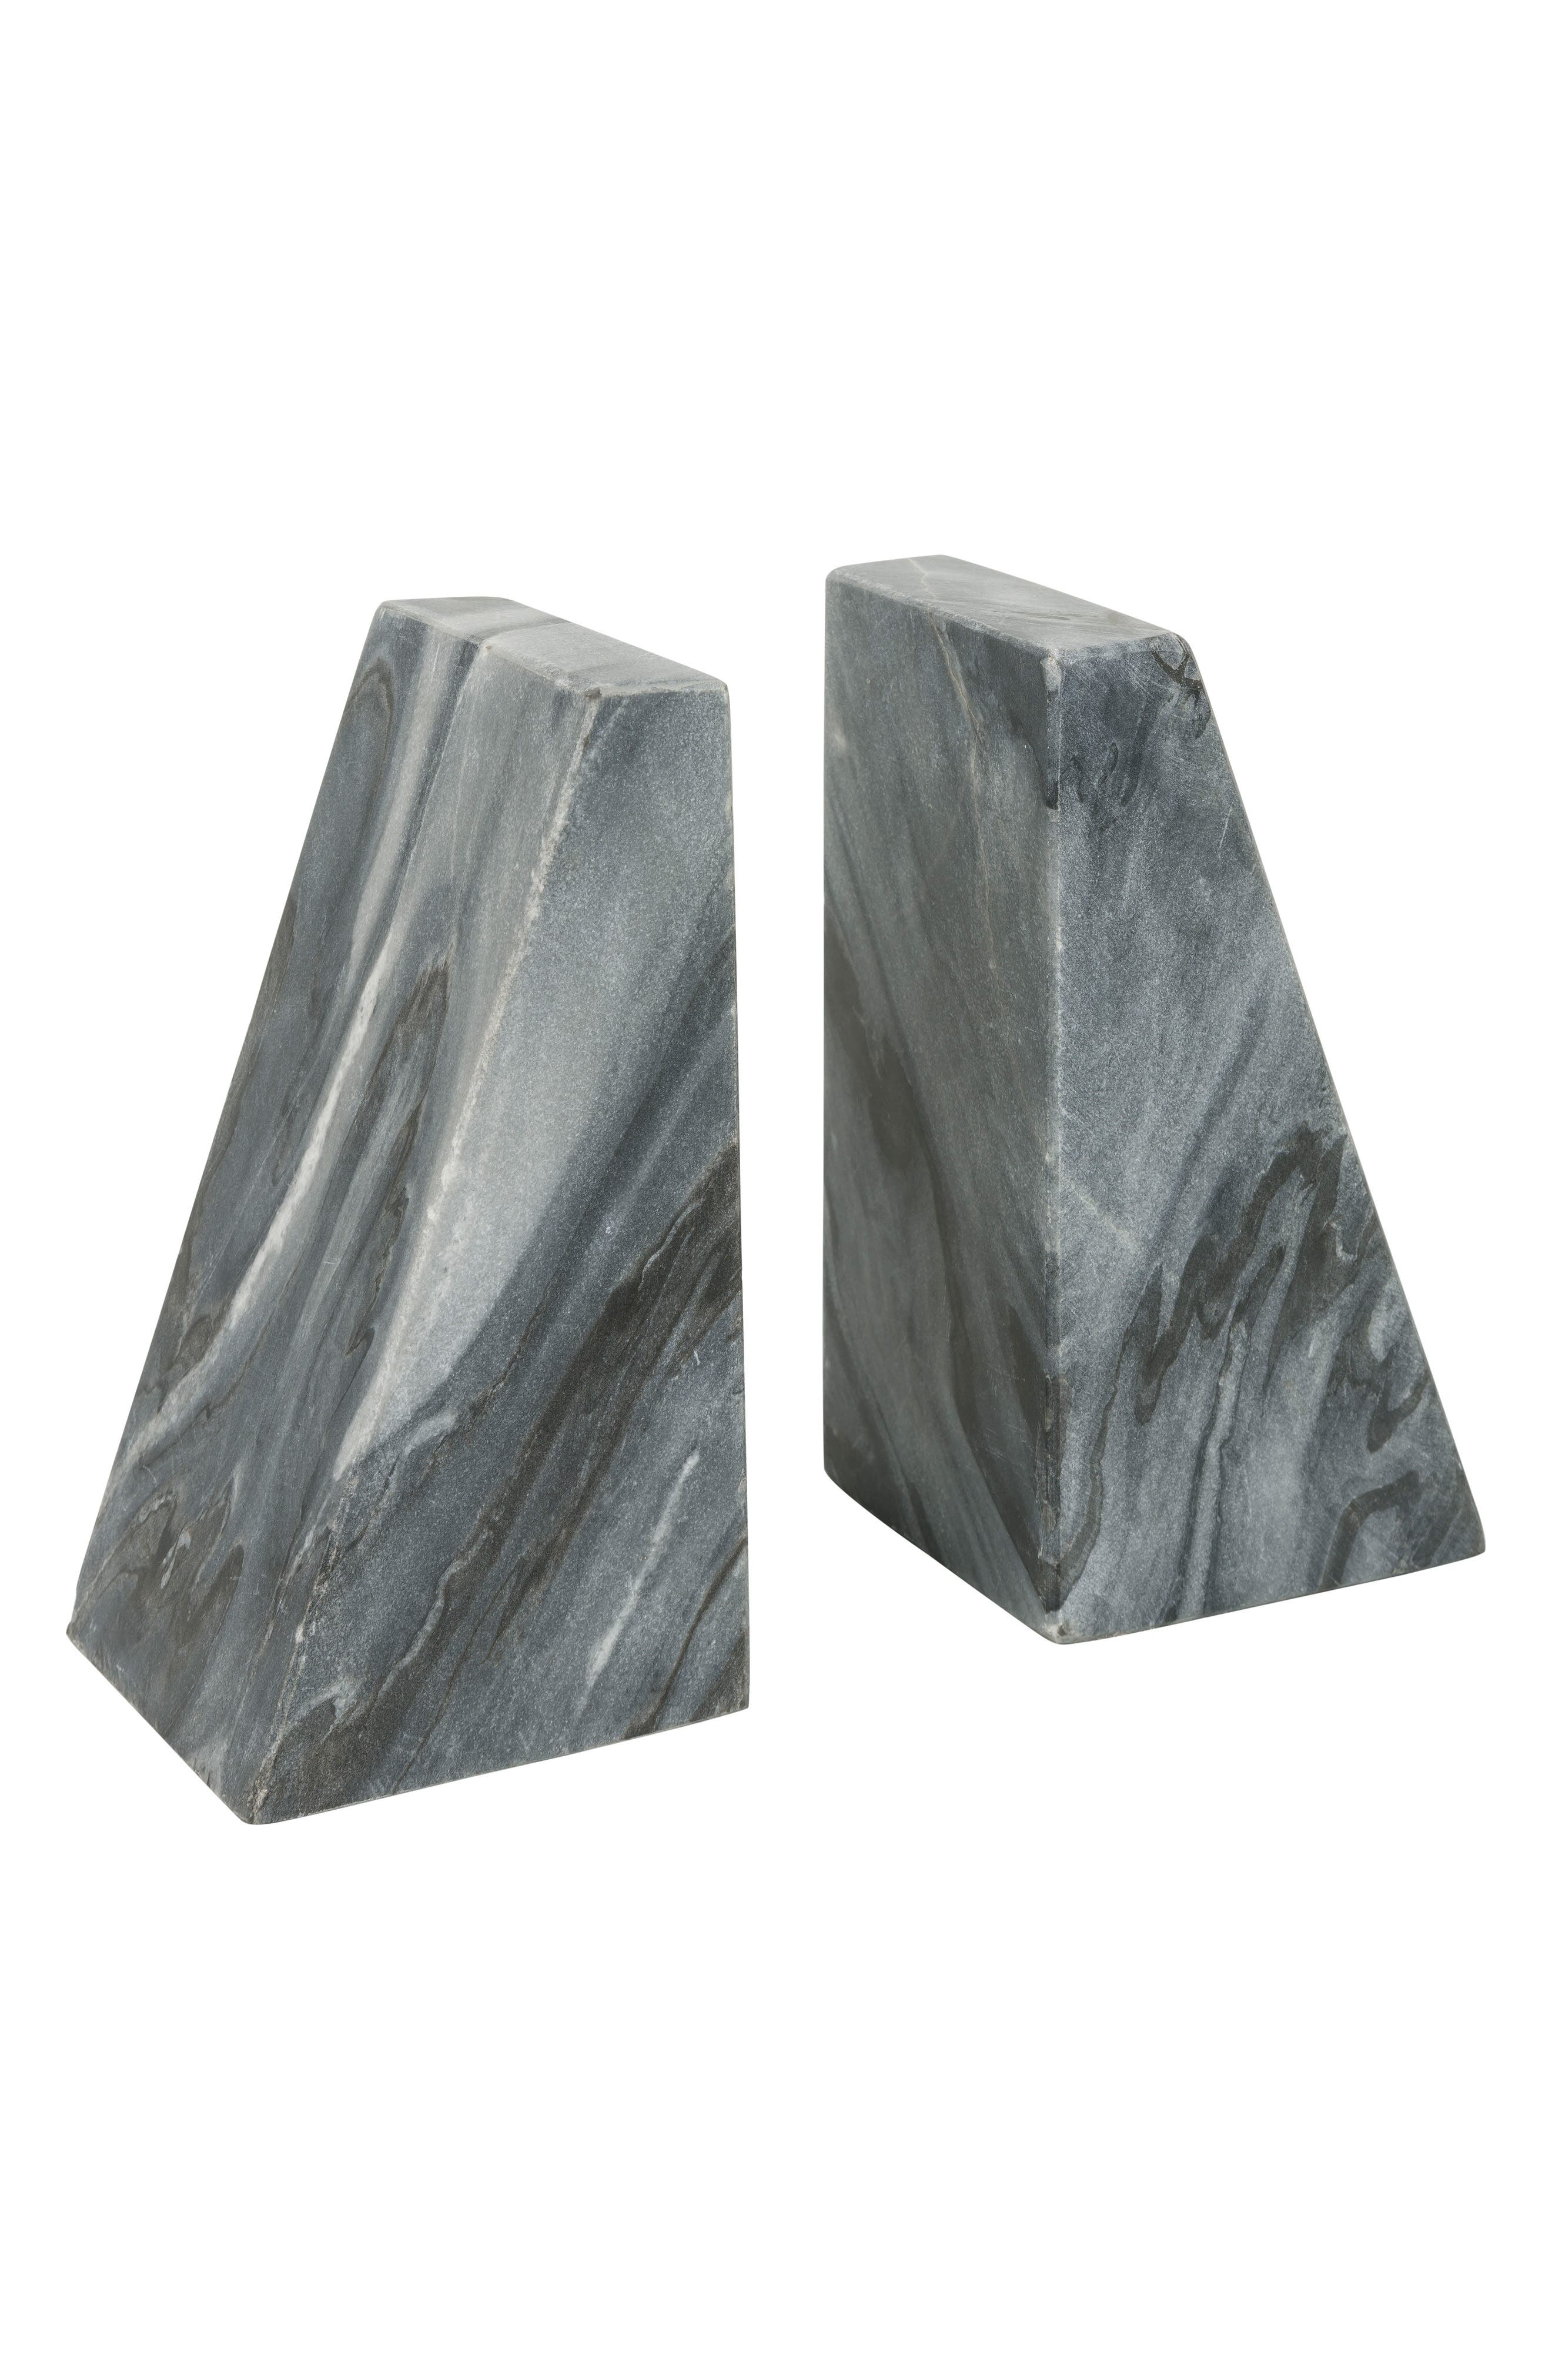 Main Image - Eightmood Mars Marble Bookends